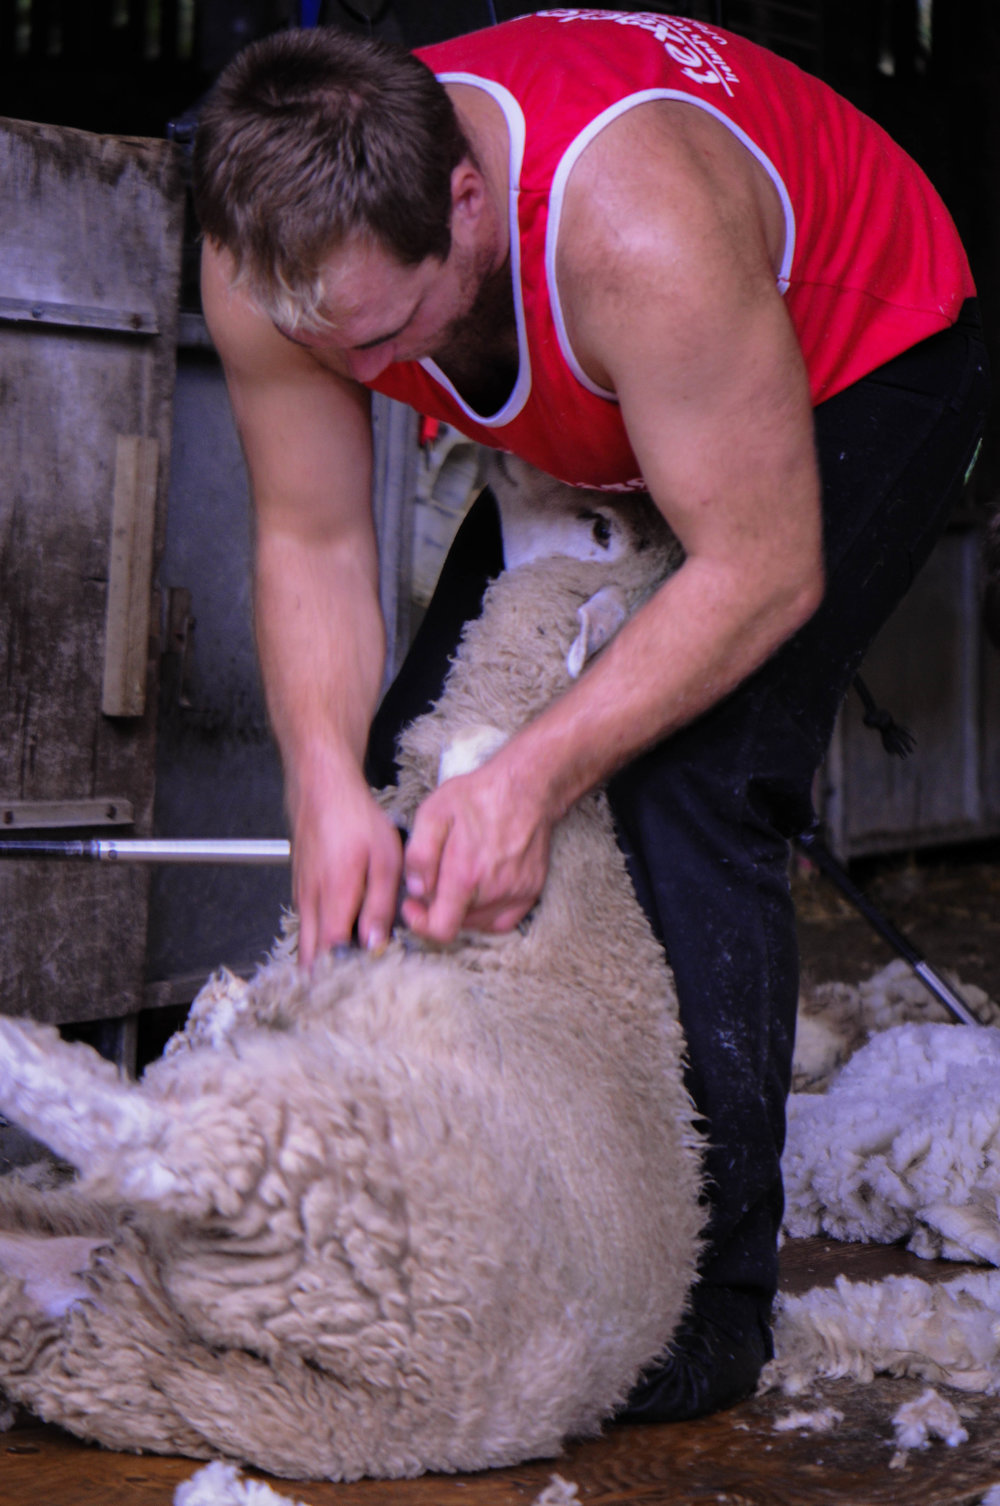 Shearing a sheep